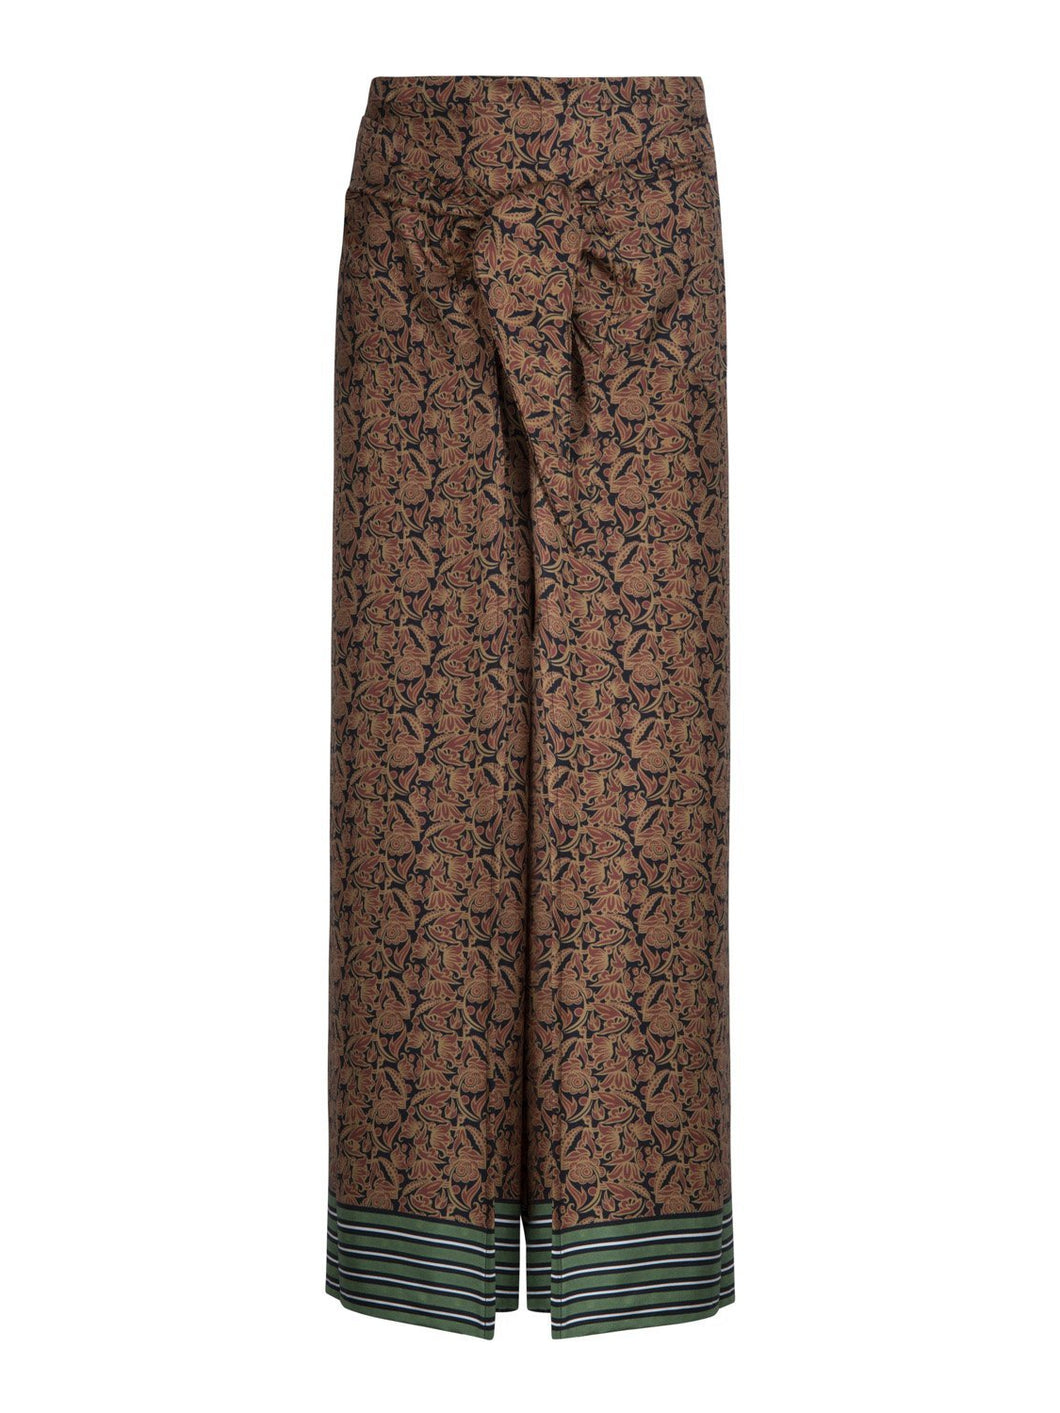 Fisherman Trousers in Flora Stripe